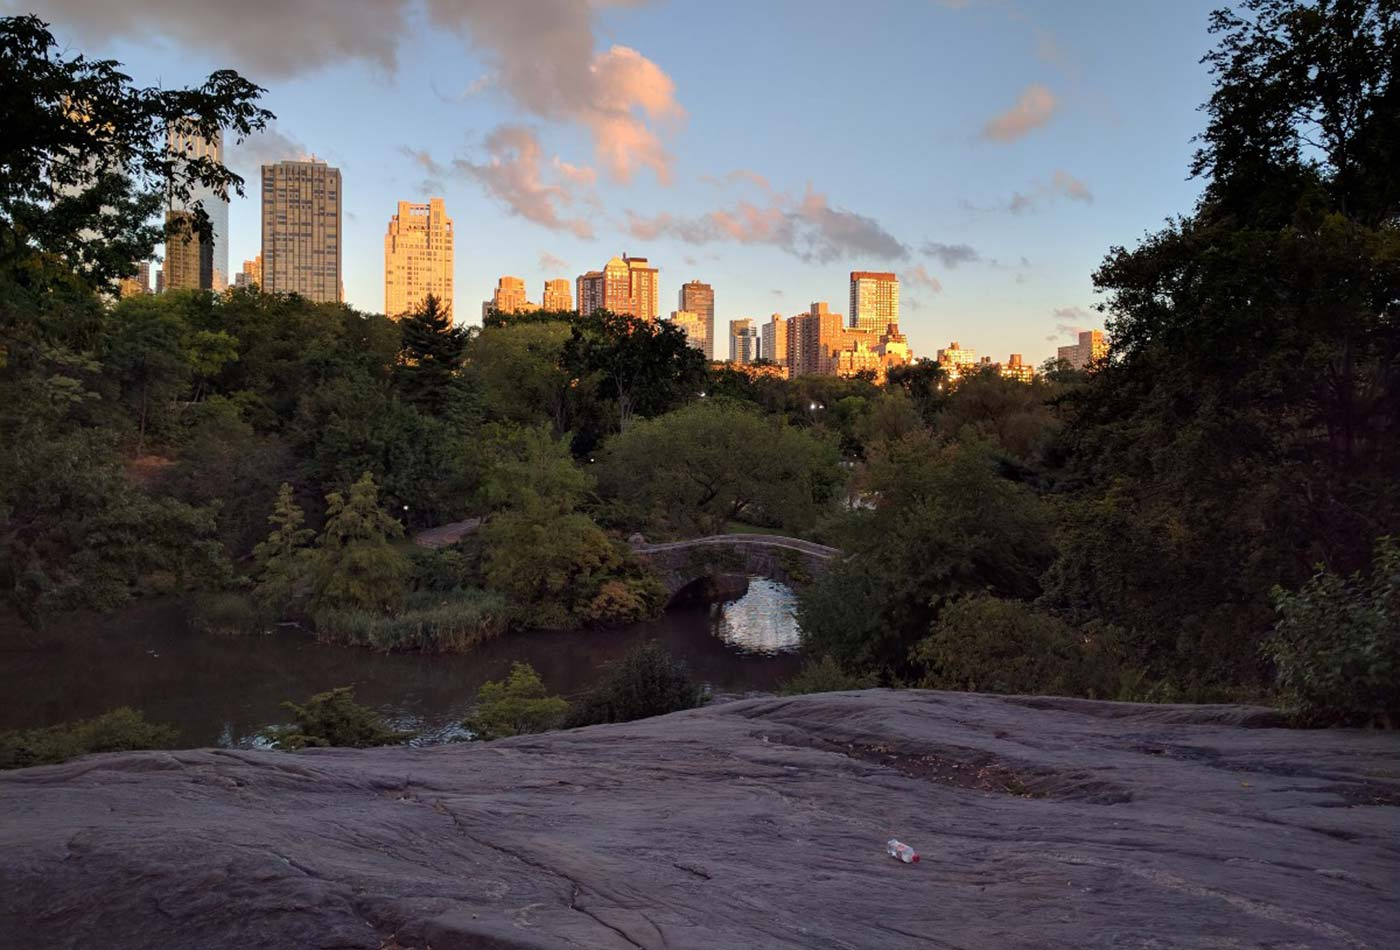 Sunrise over central park, with abandoned water bottle.